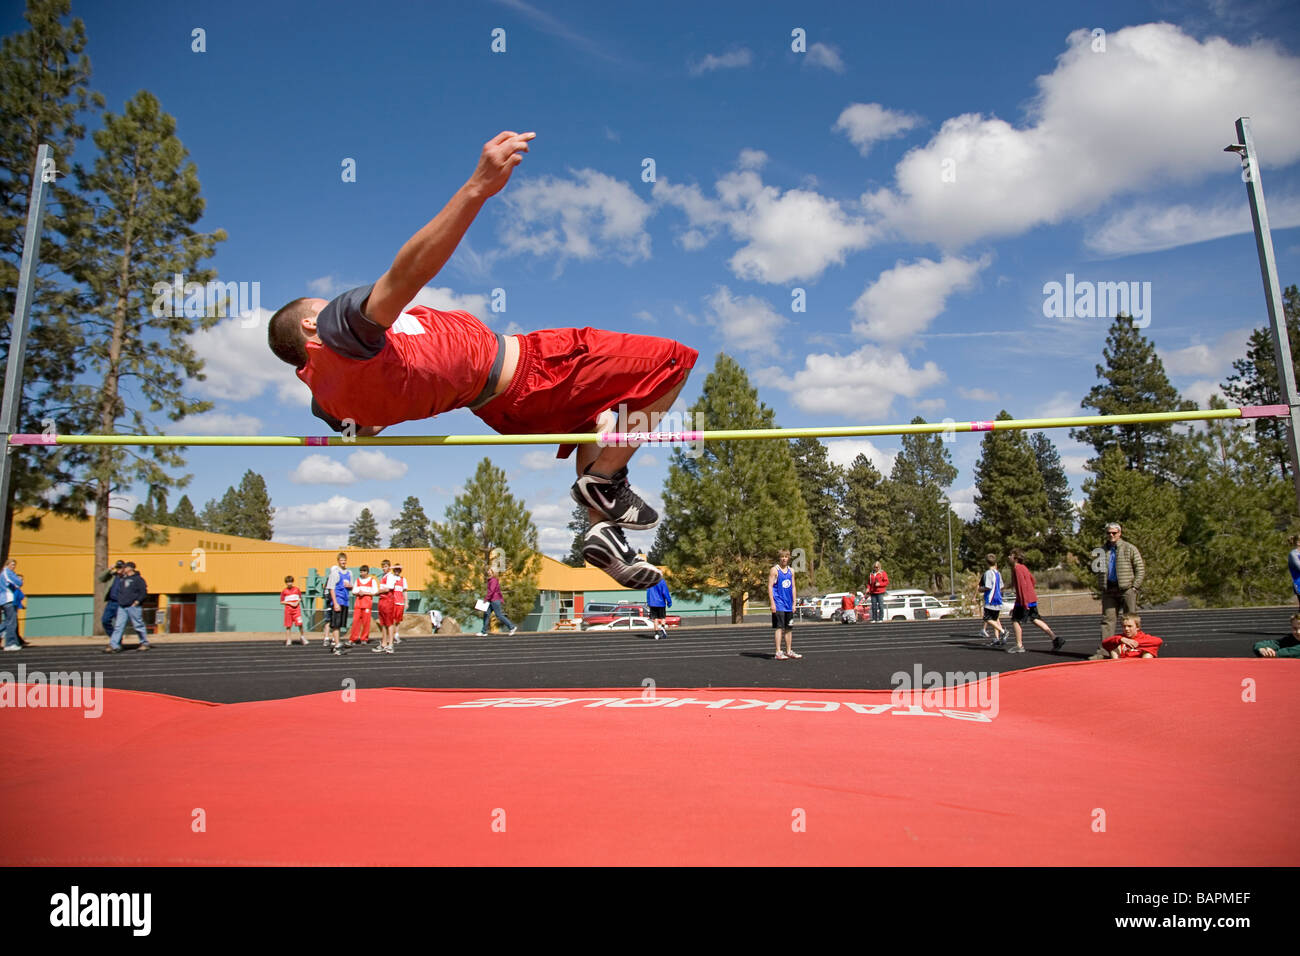 A middle school boys high jump during a school track and field meet on the field of a local junior high school - Stock Image